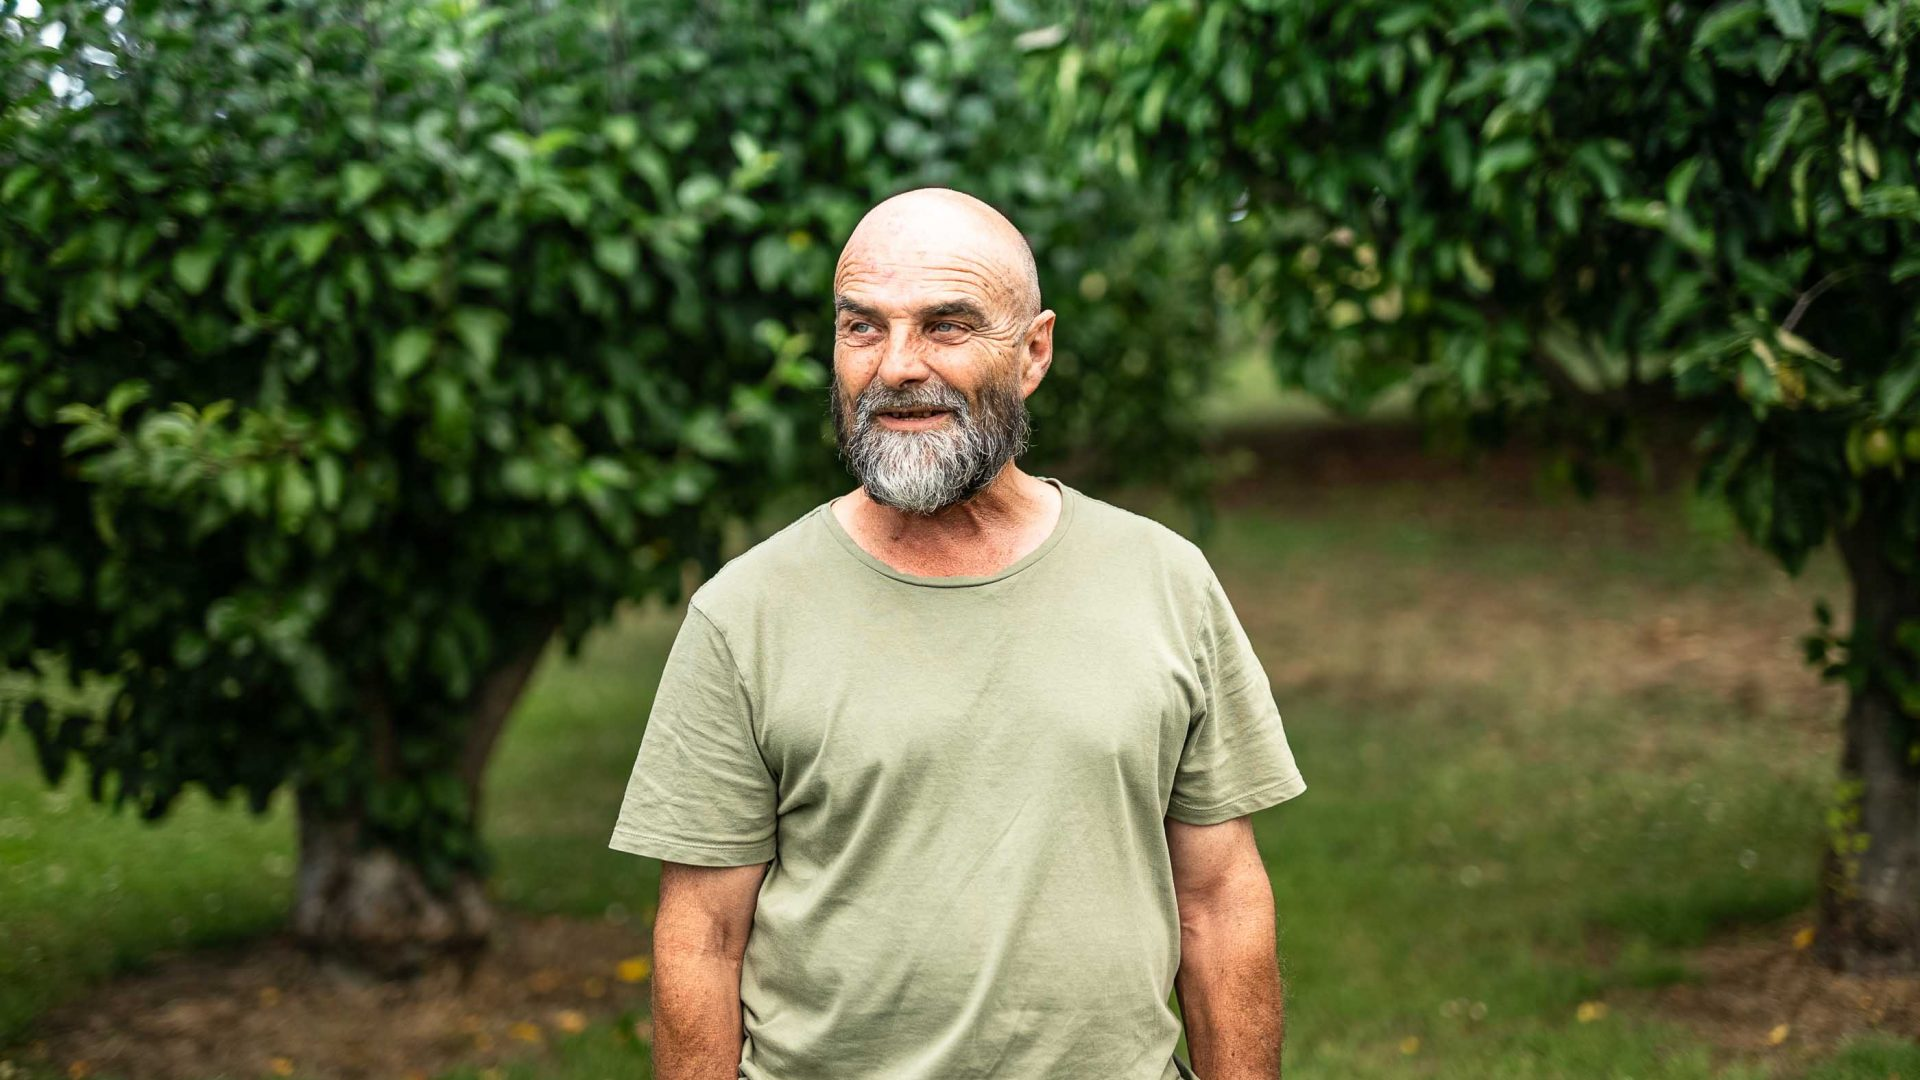 Martin smiles in front of trees.